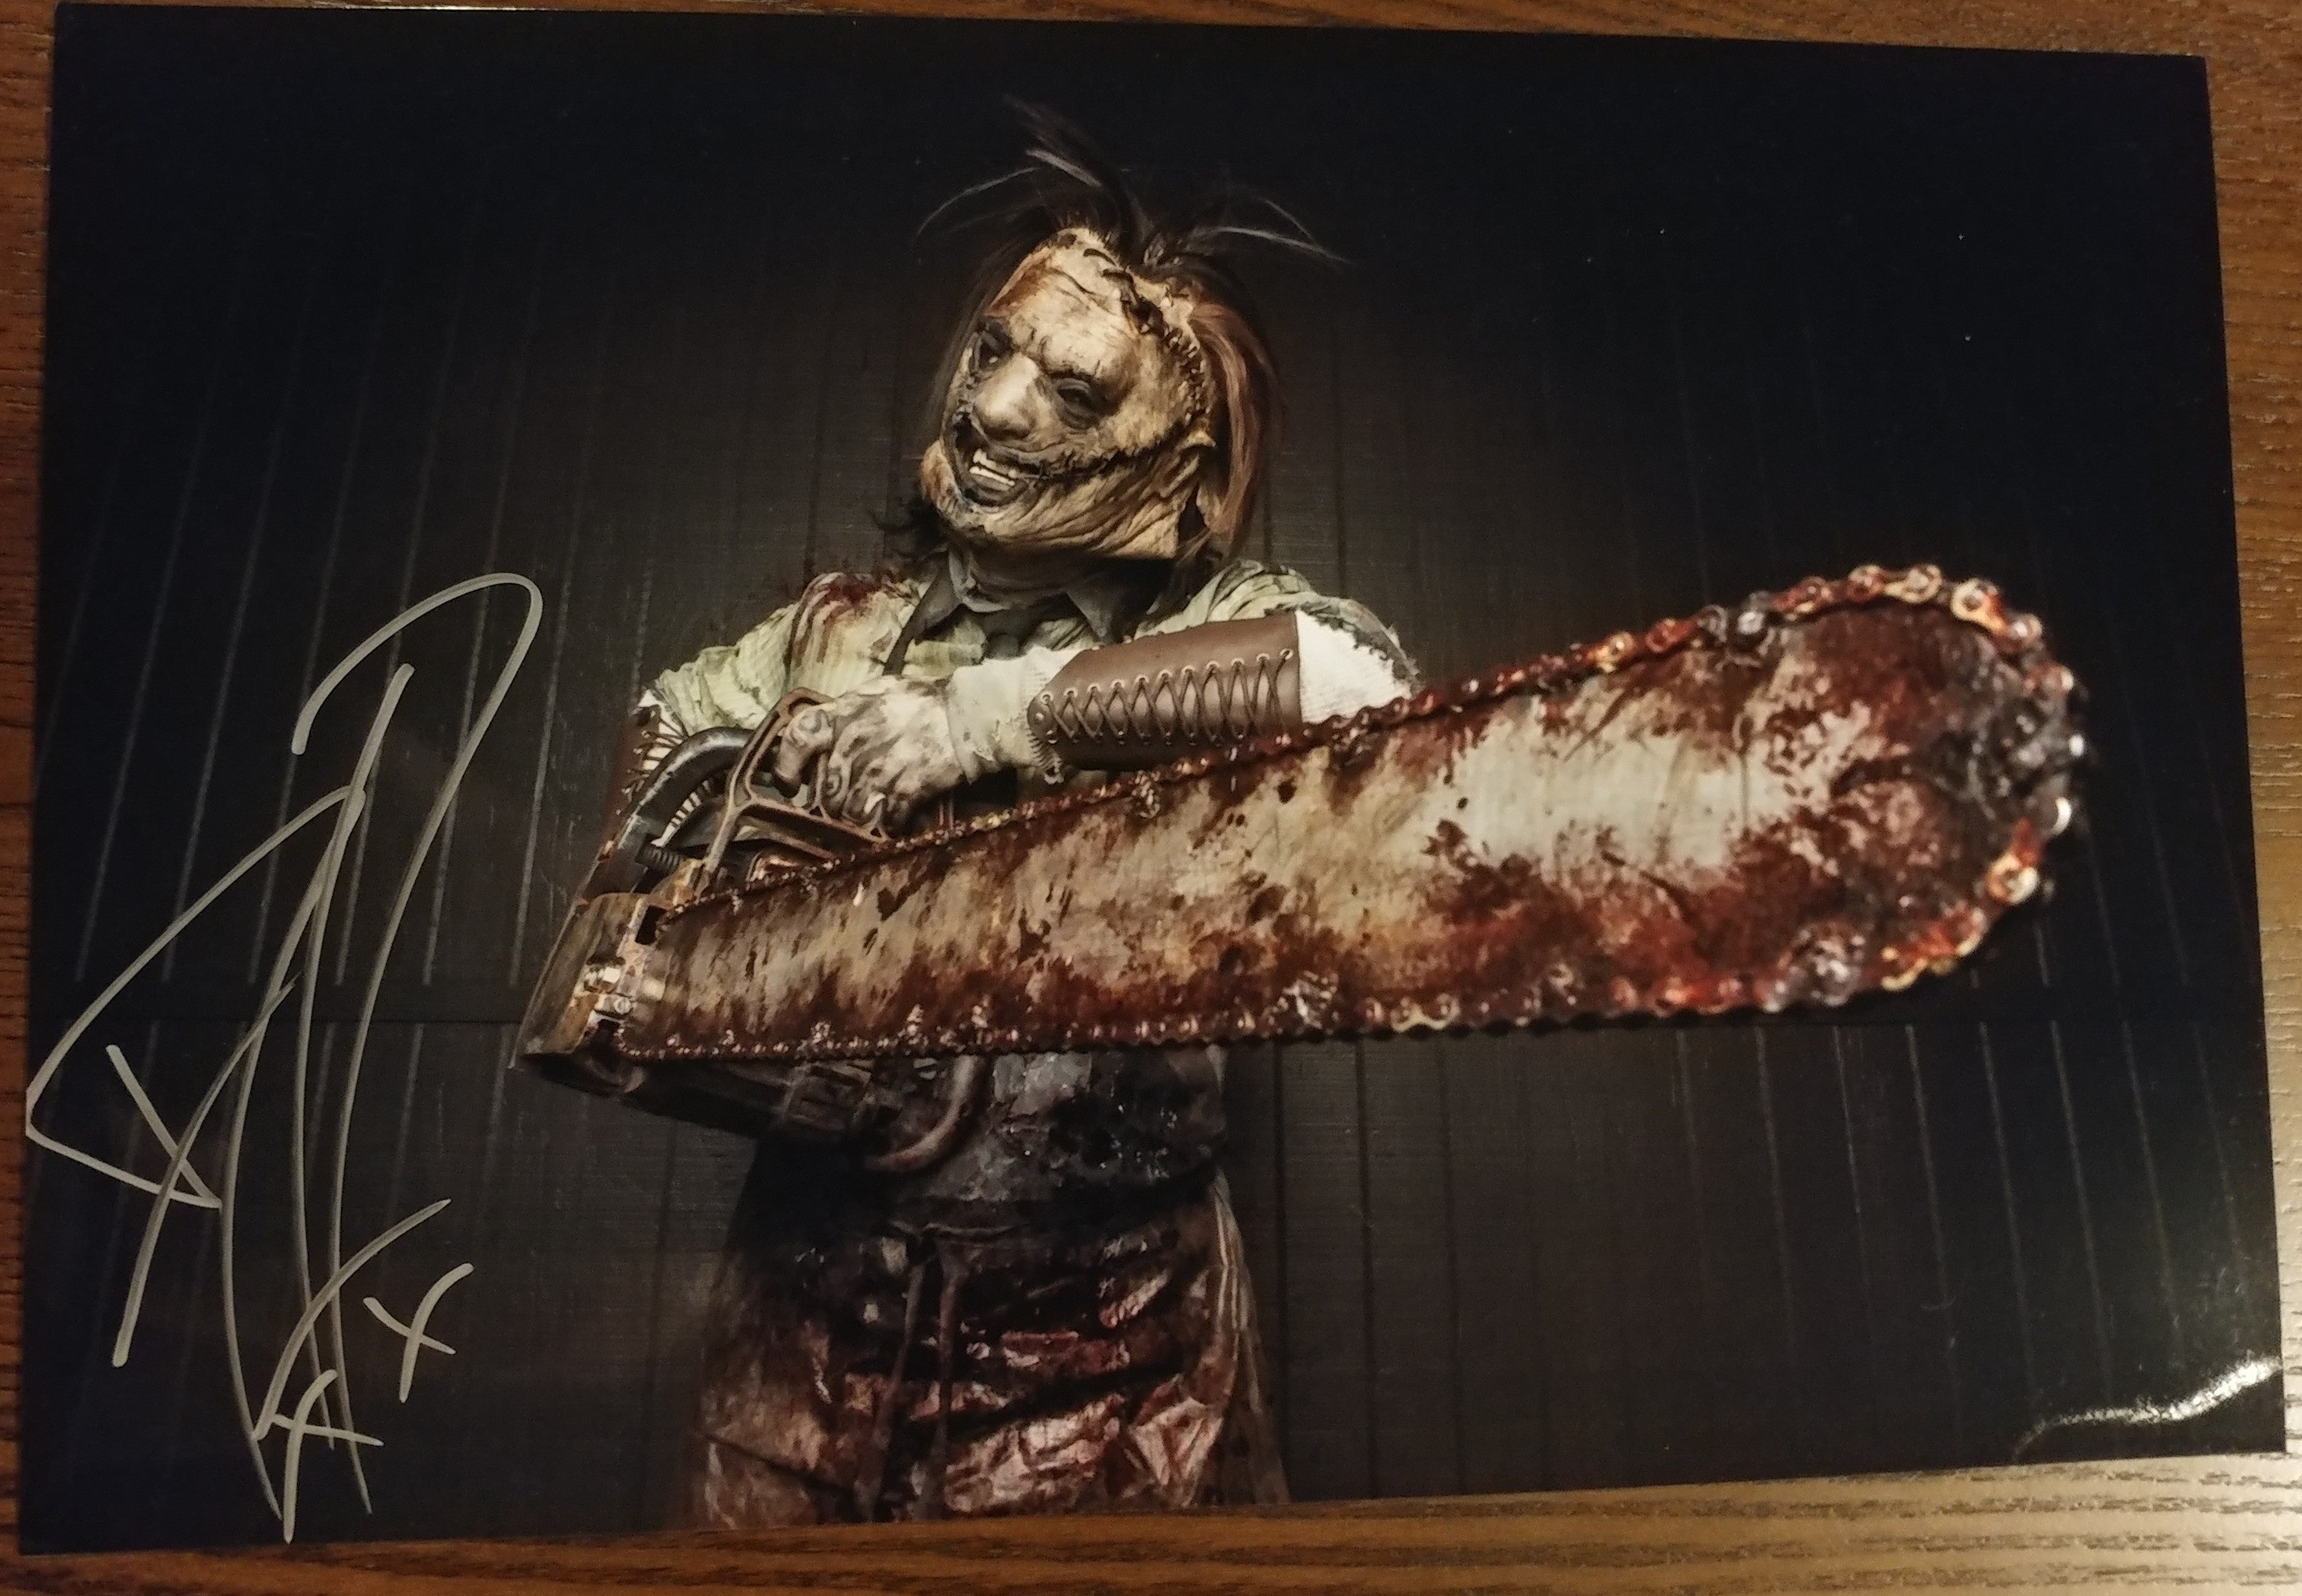 Ghost - Leatherface signed 8x12 (damaged)